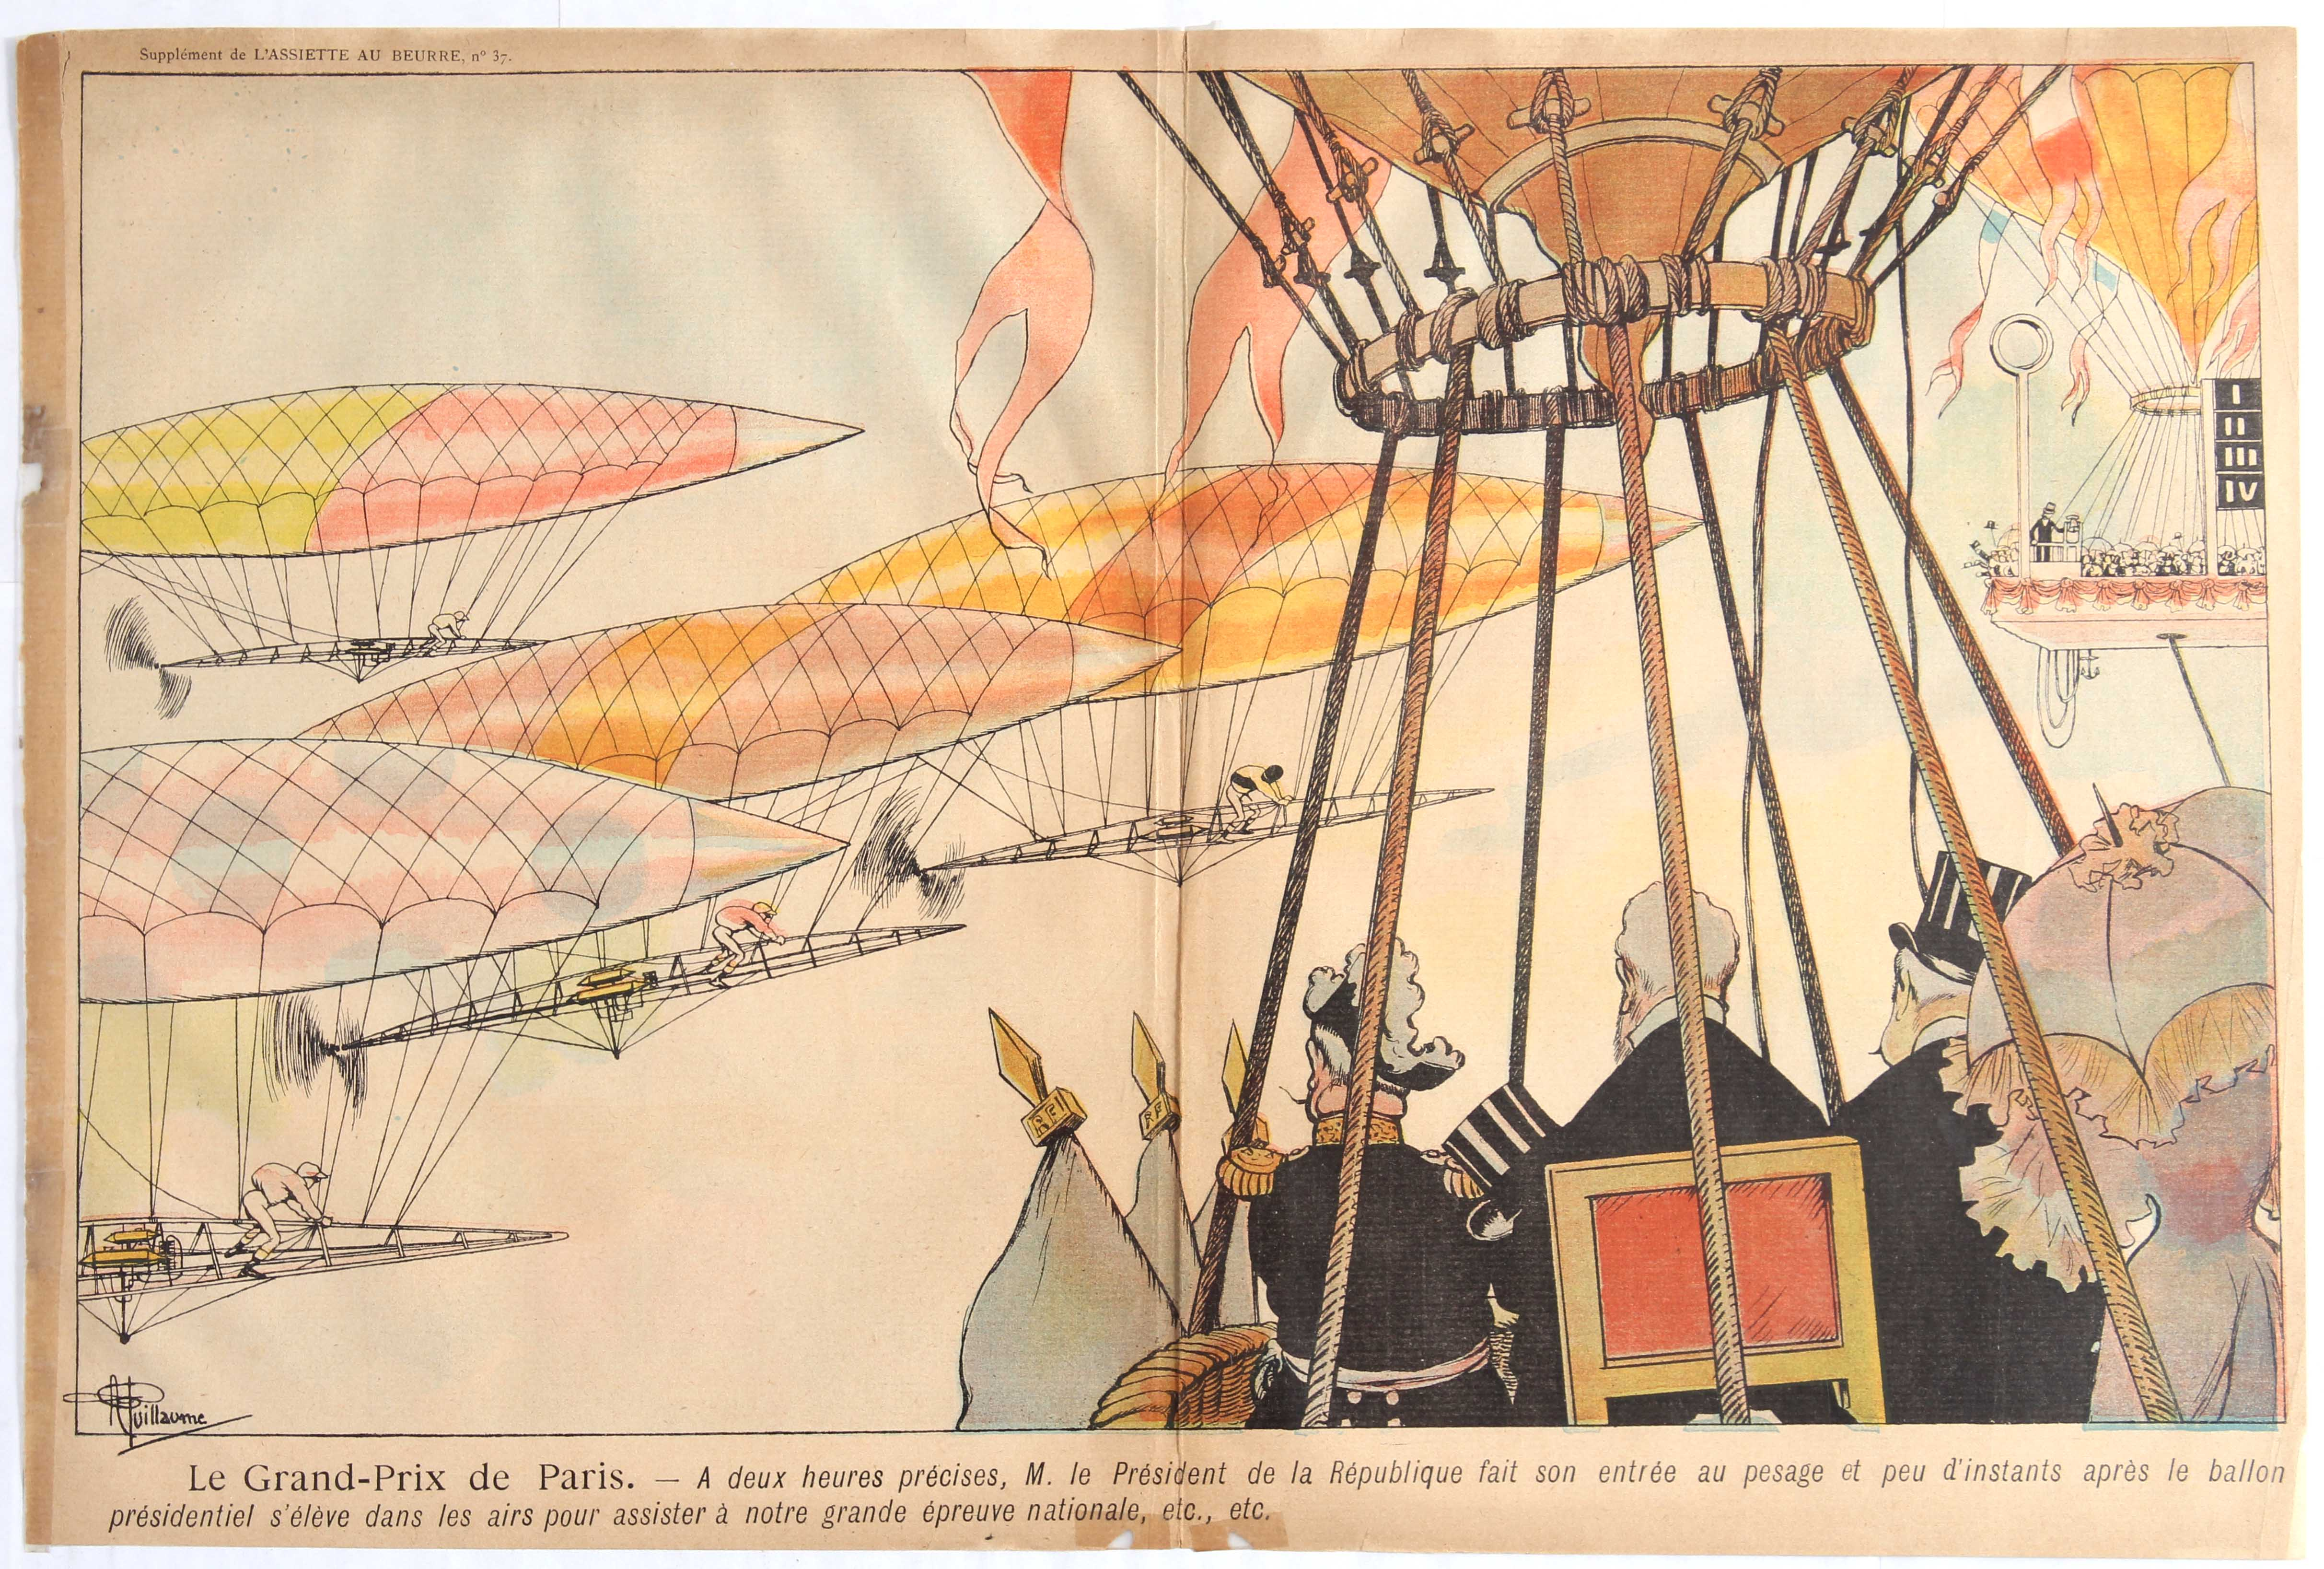 Lot 1002 - Advertising Poster Zeppelin Early Aviation